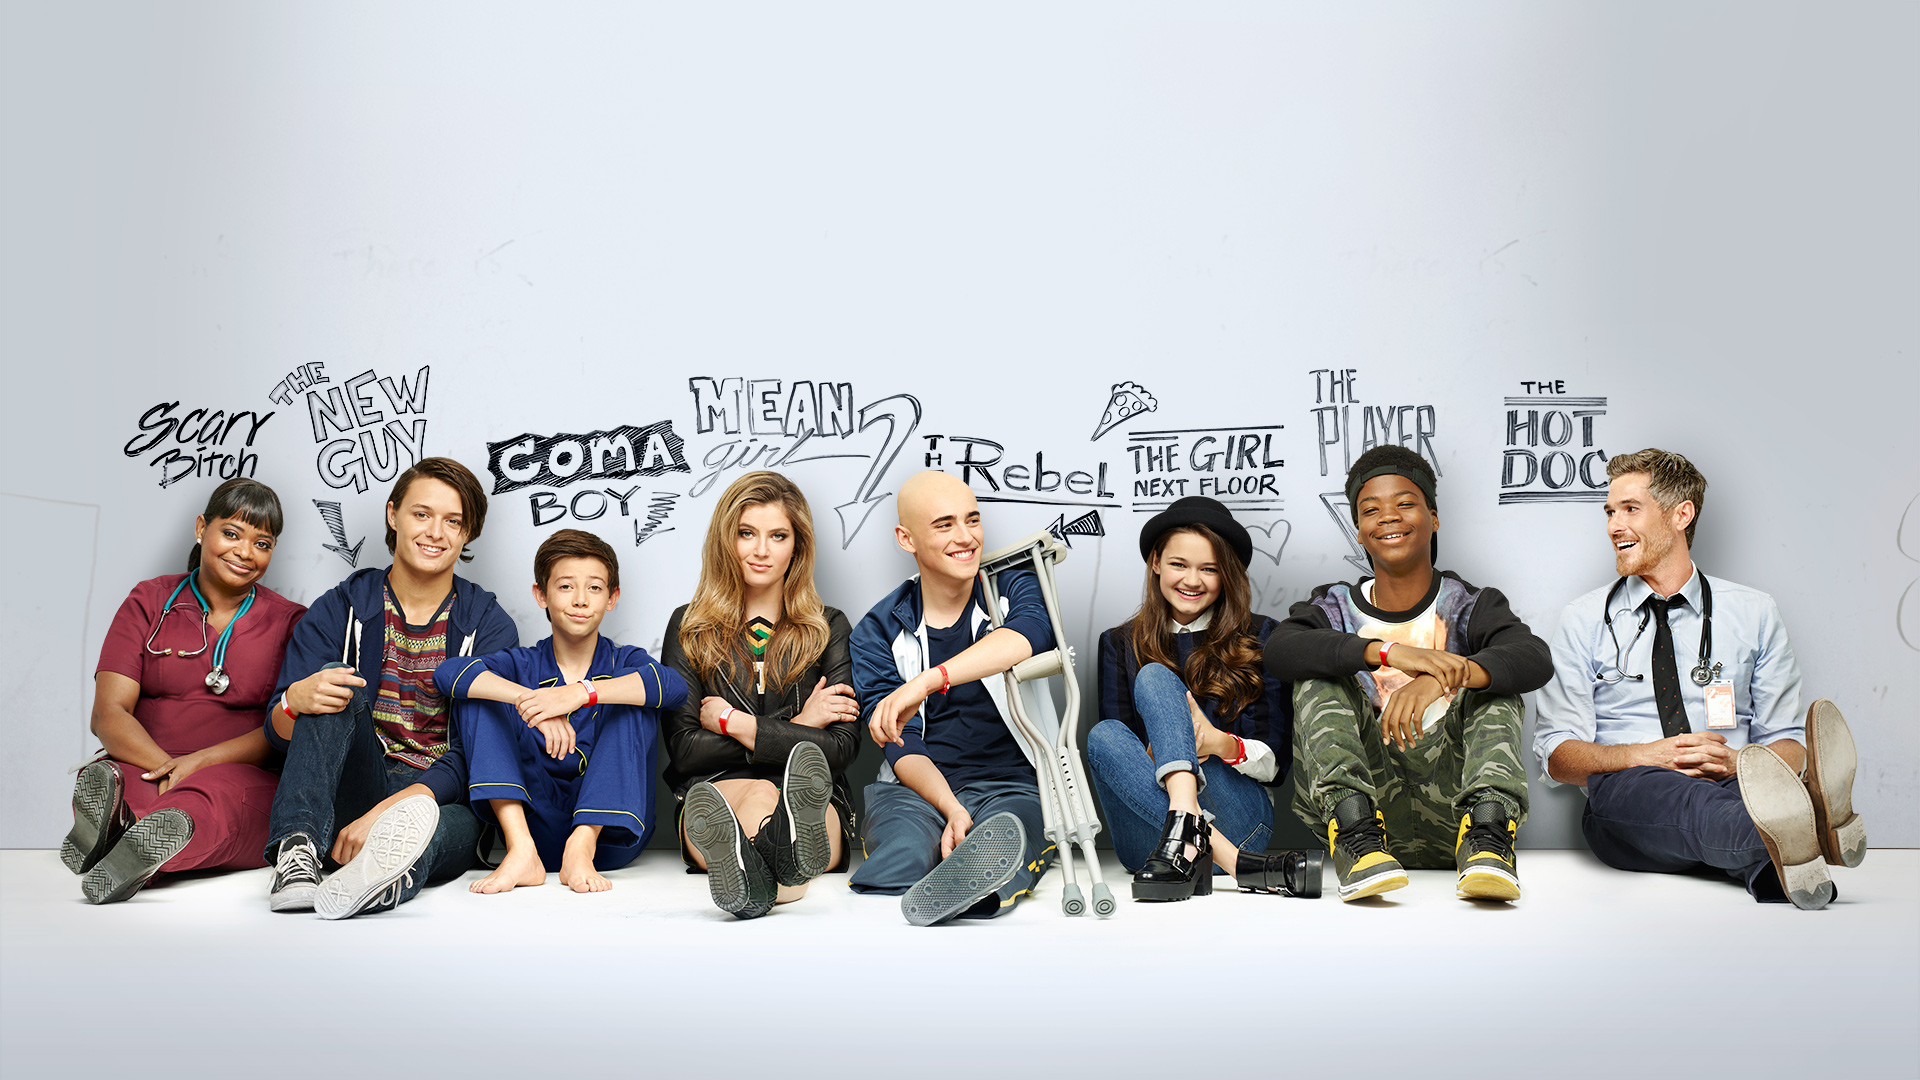 Red Band Society Share This: How To Get Away With Murder '